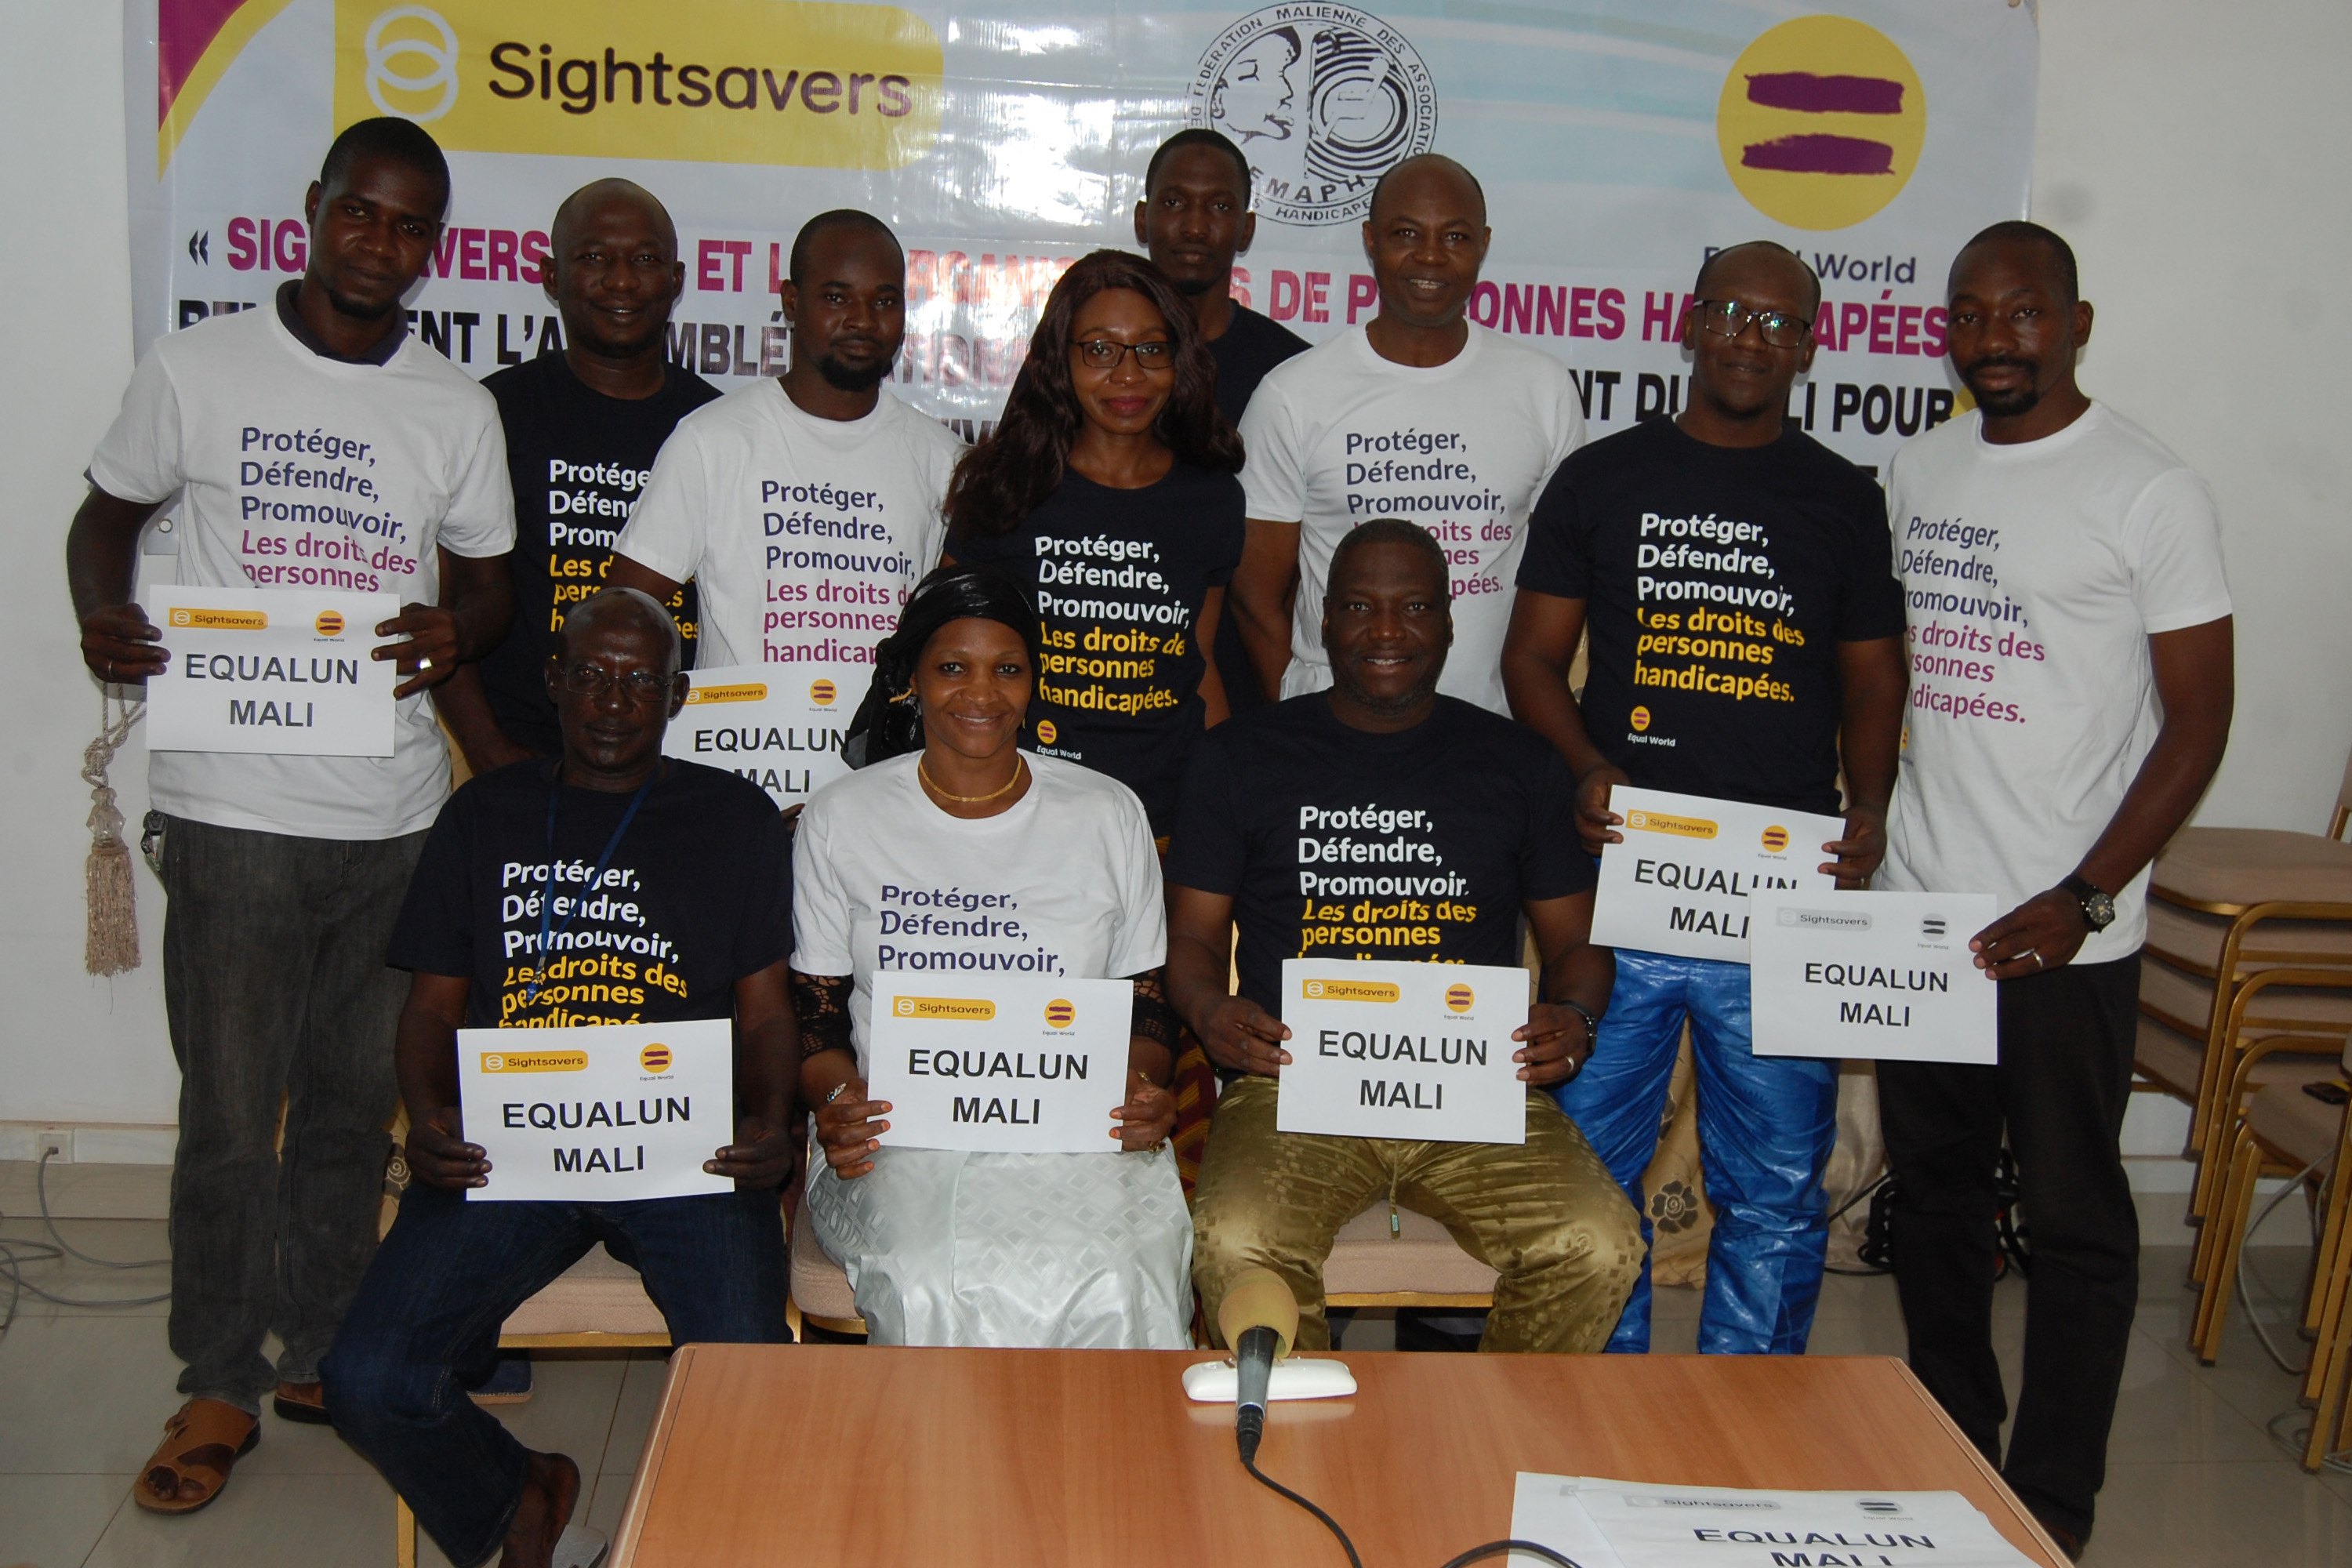 A group of eleven adults posing together, all wearing t-shirts that say 'Protect. Defend. Promote. Disability rights'.